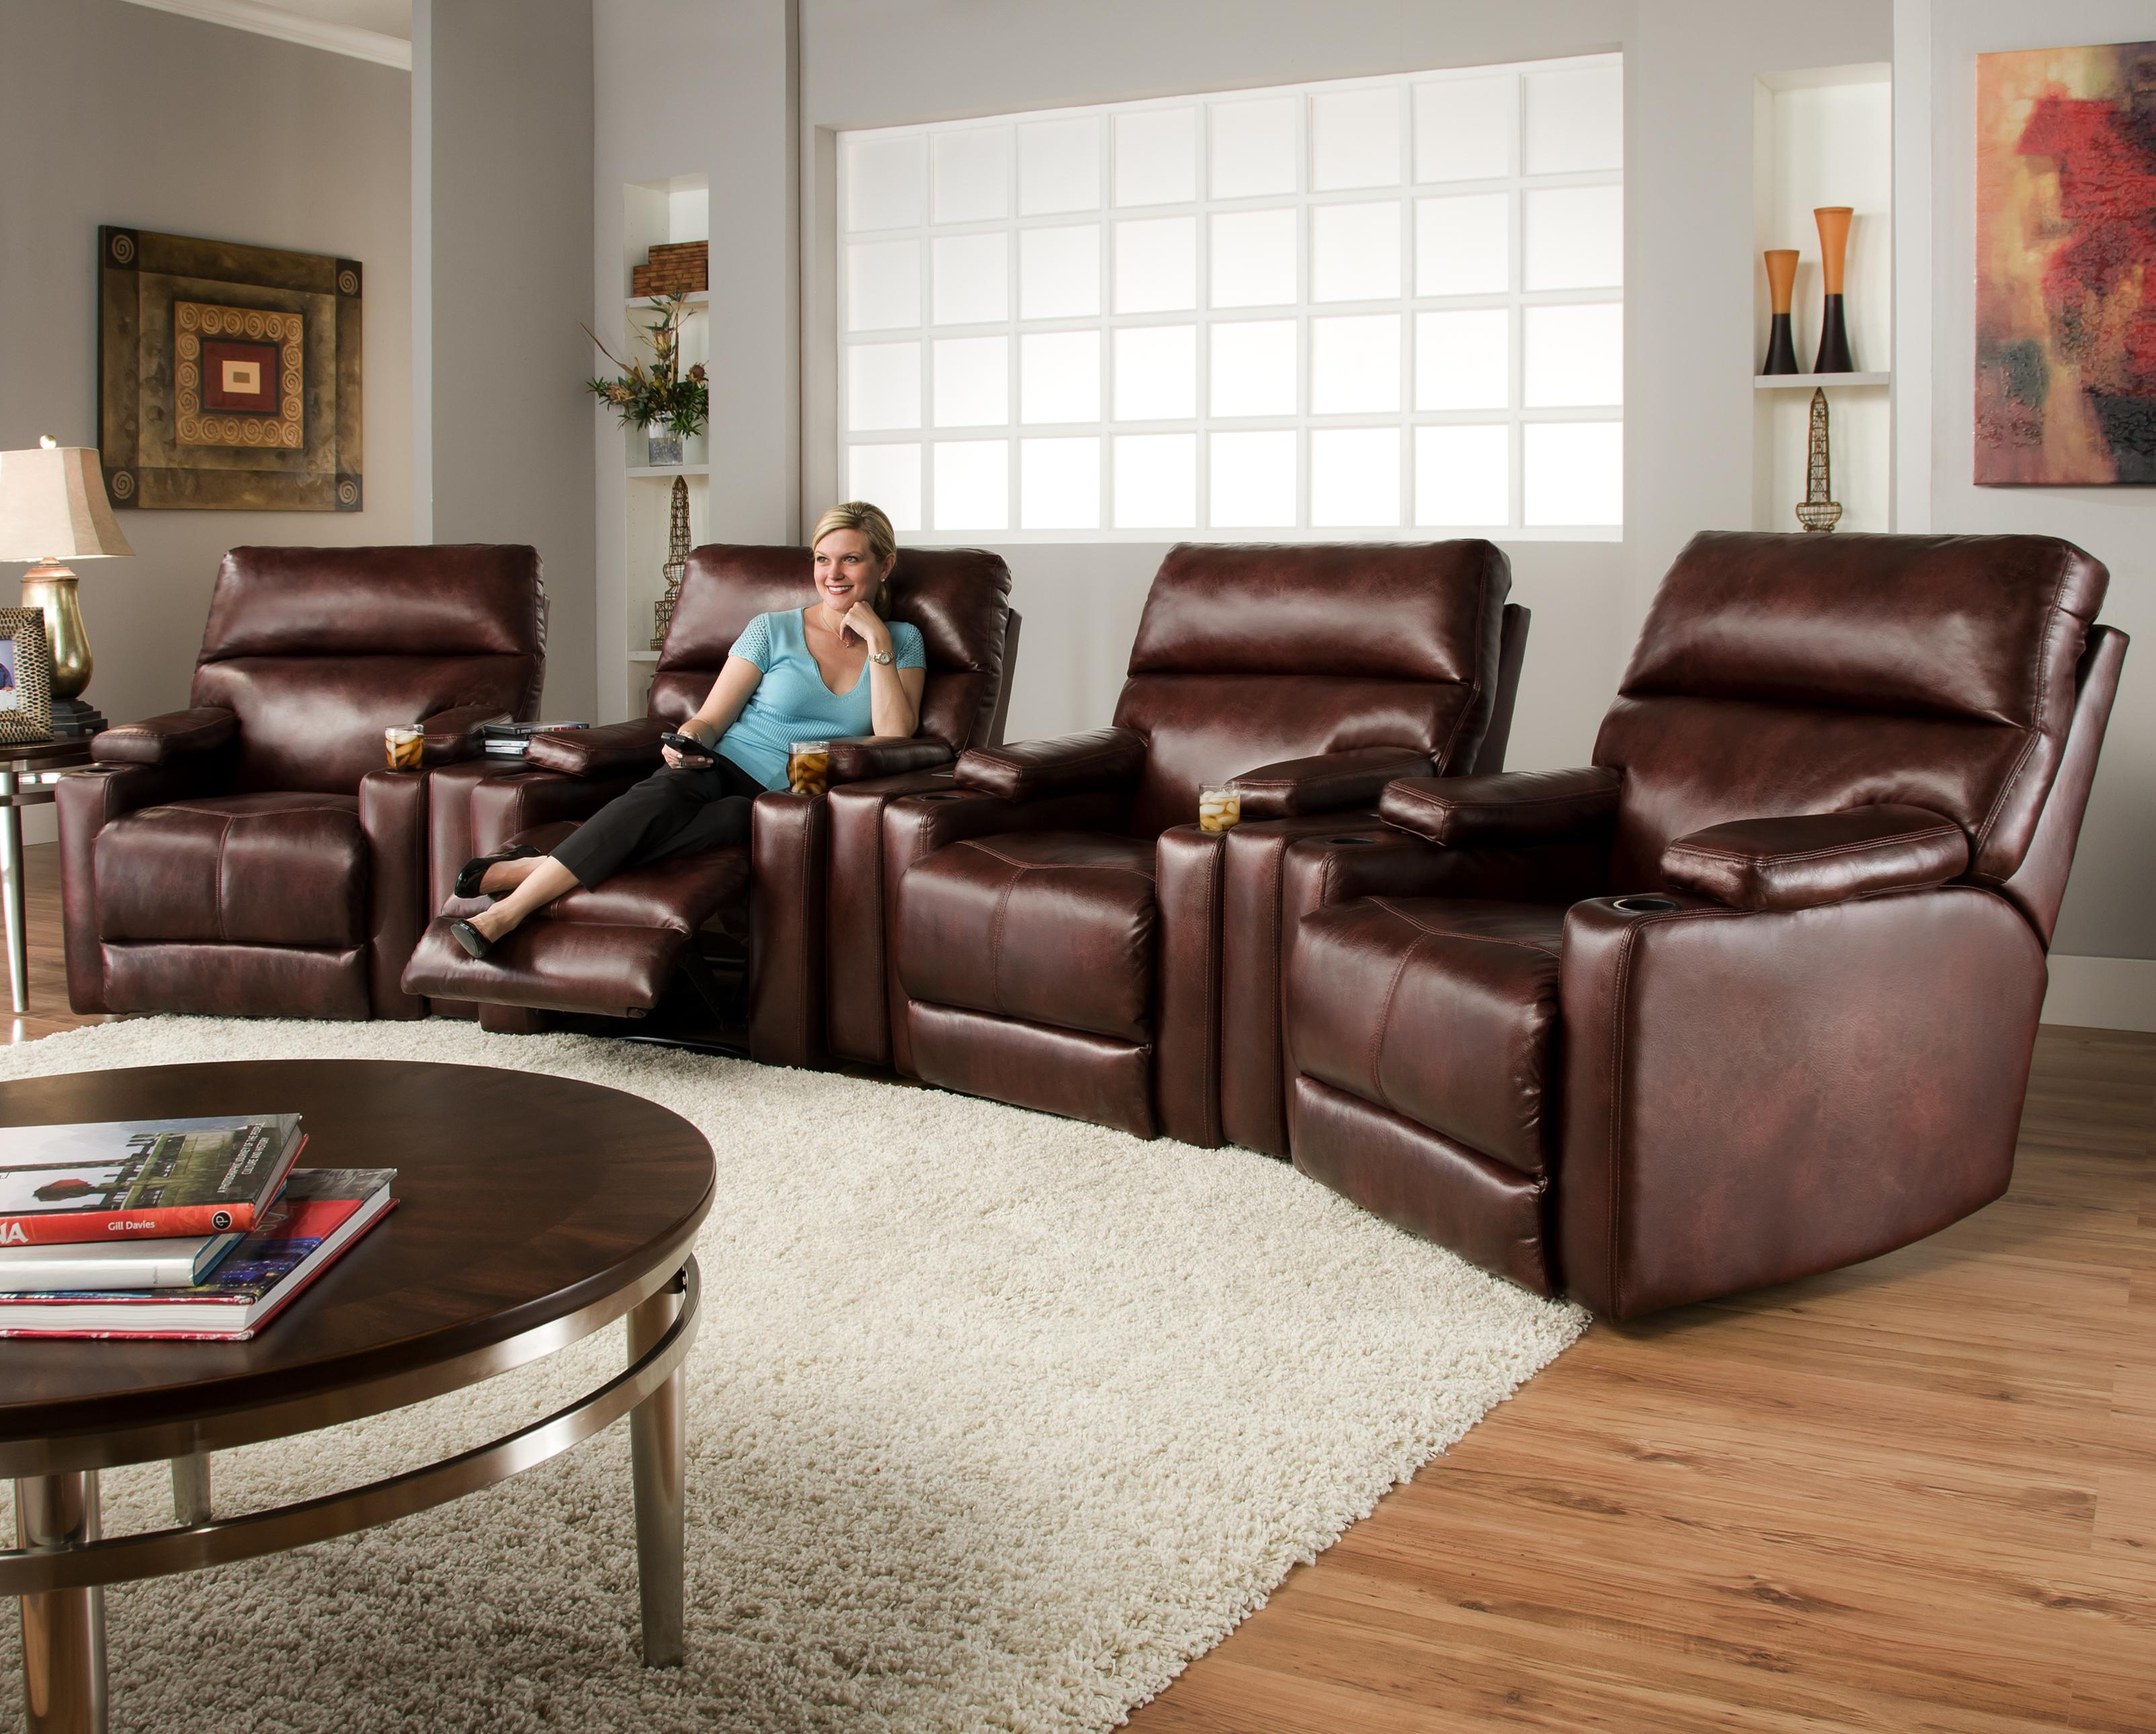 Theater Seating Group With 4 Lay Flat Recliners And Cup Holders By Southern Motion Wolf And